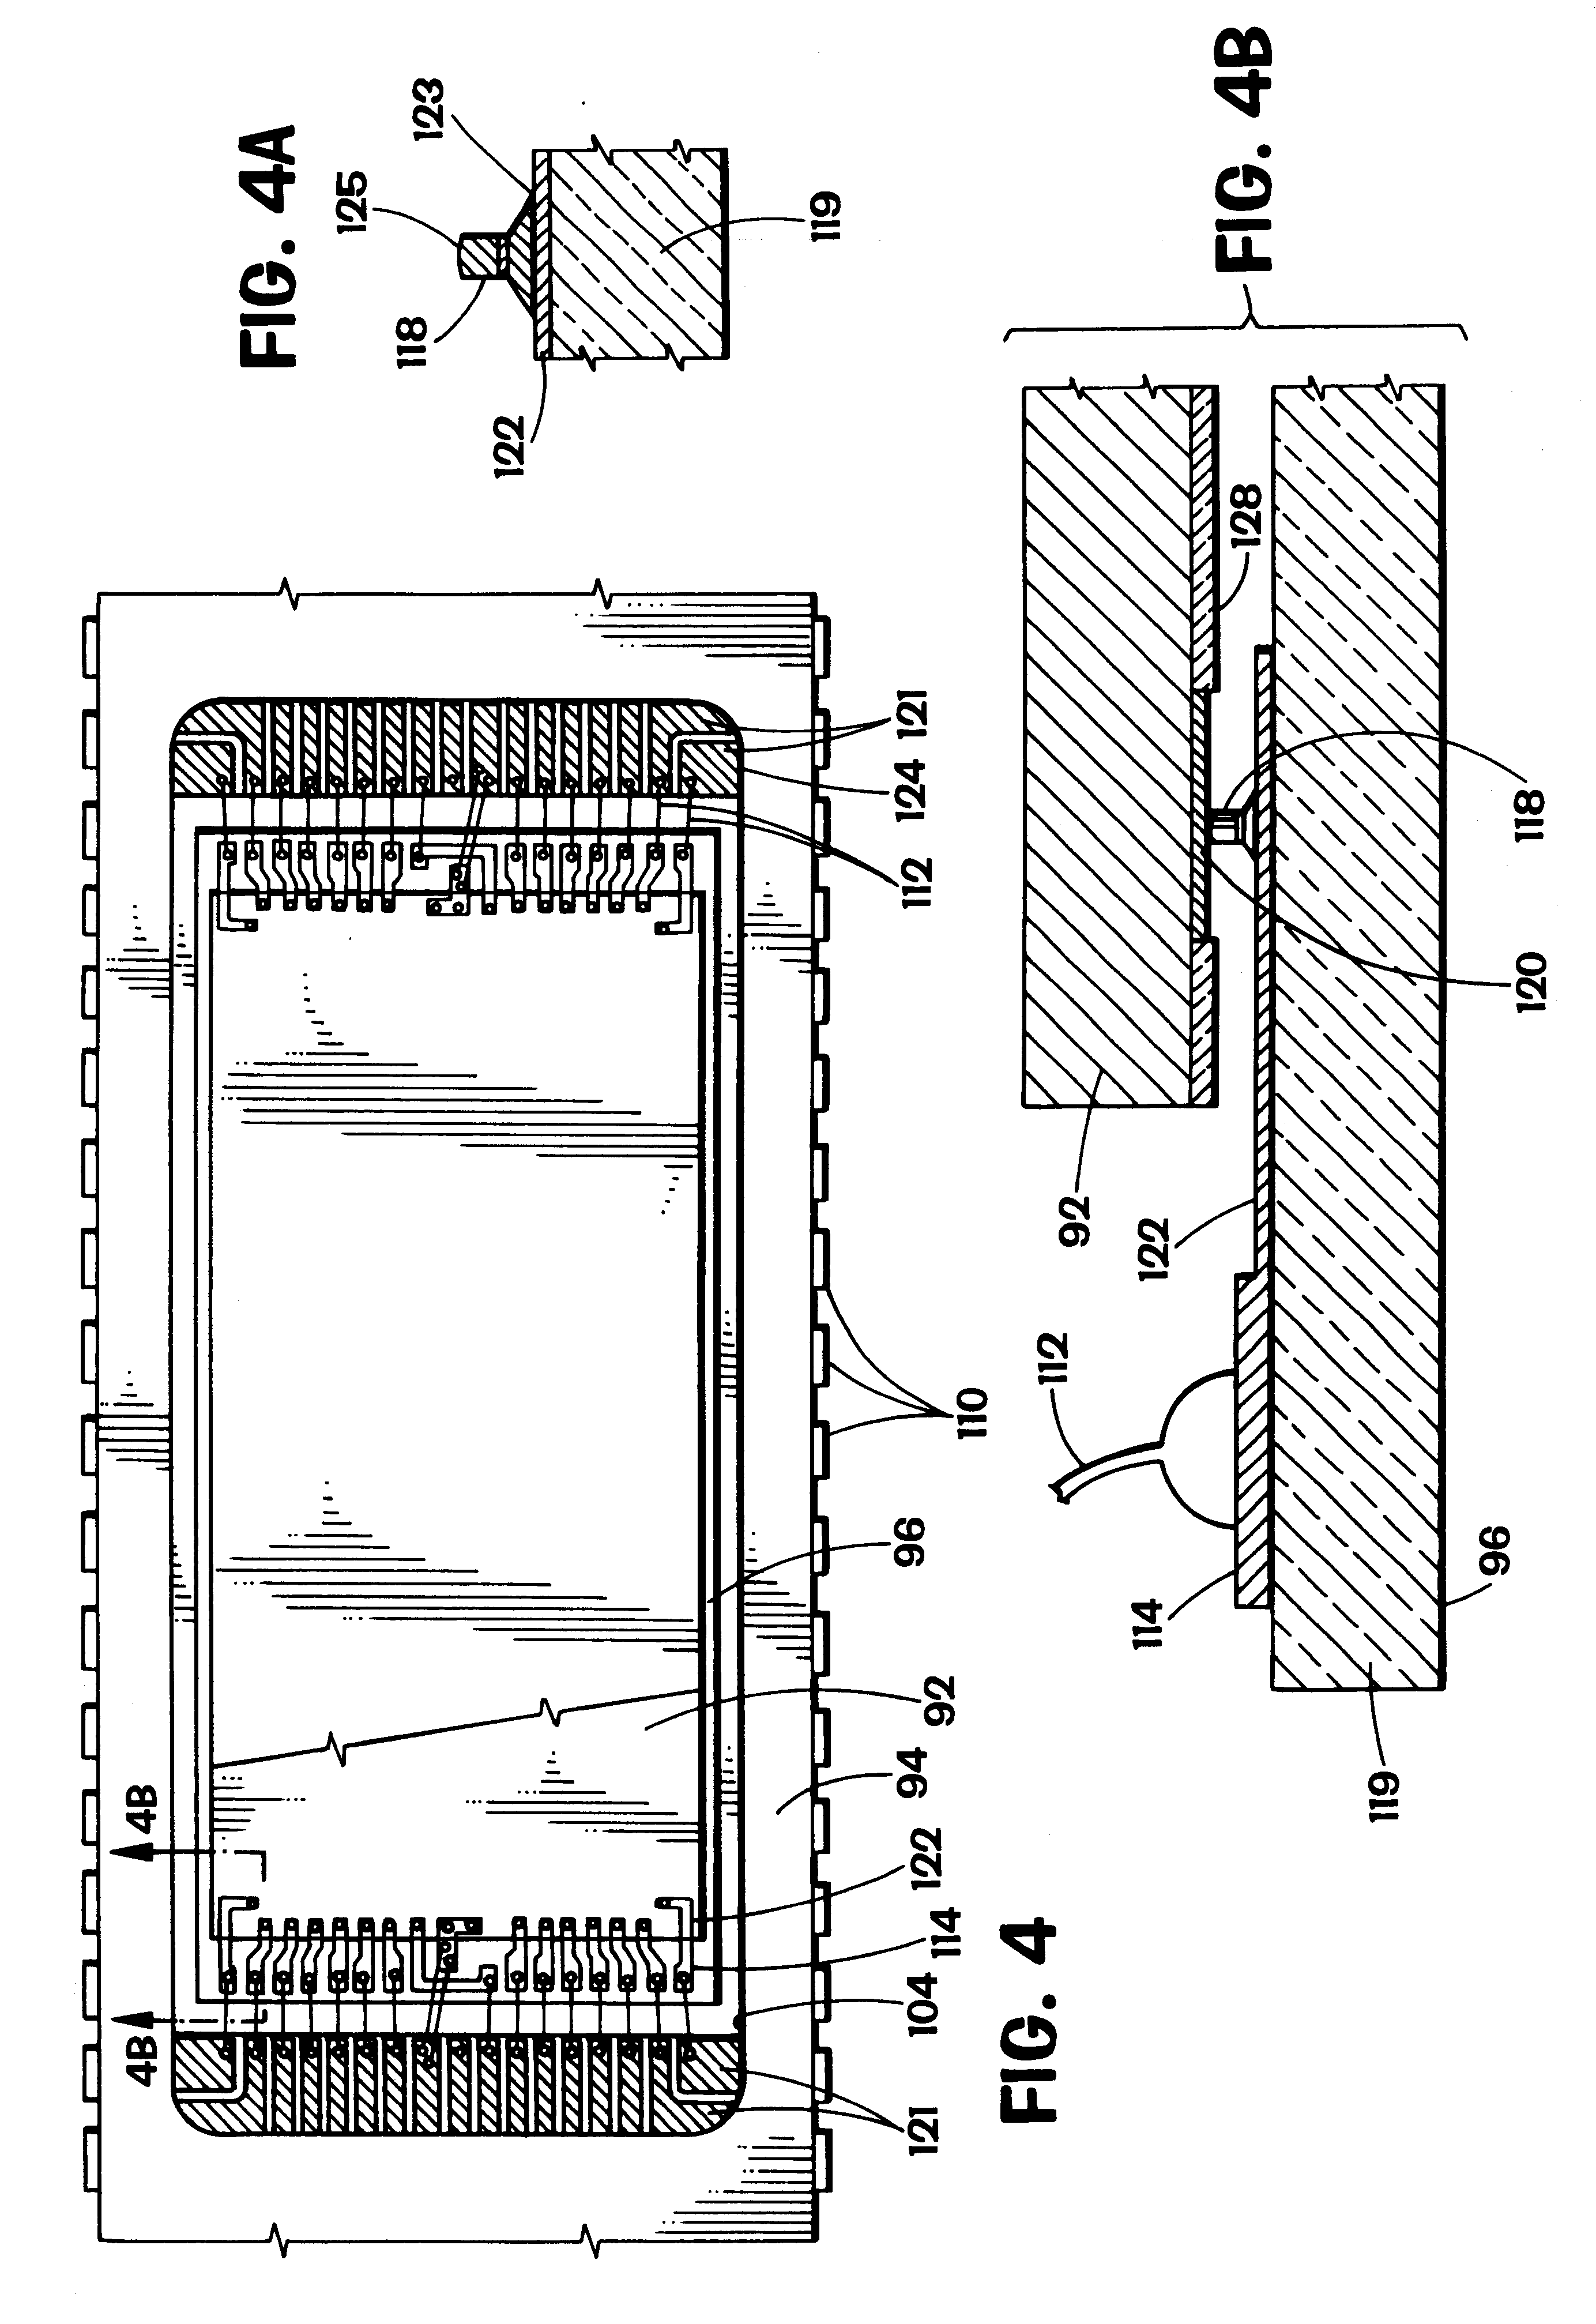 patent us6219908 - method and apparatus for manufacturing known good semiconductor die